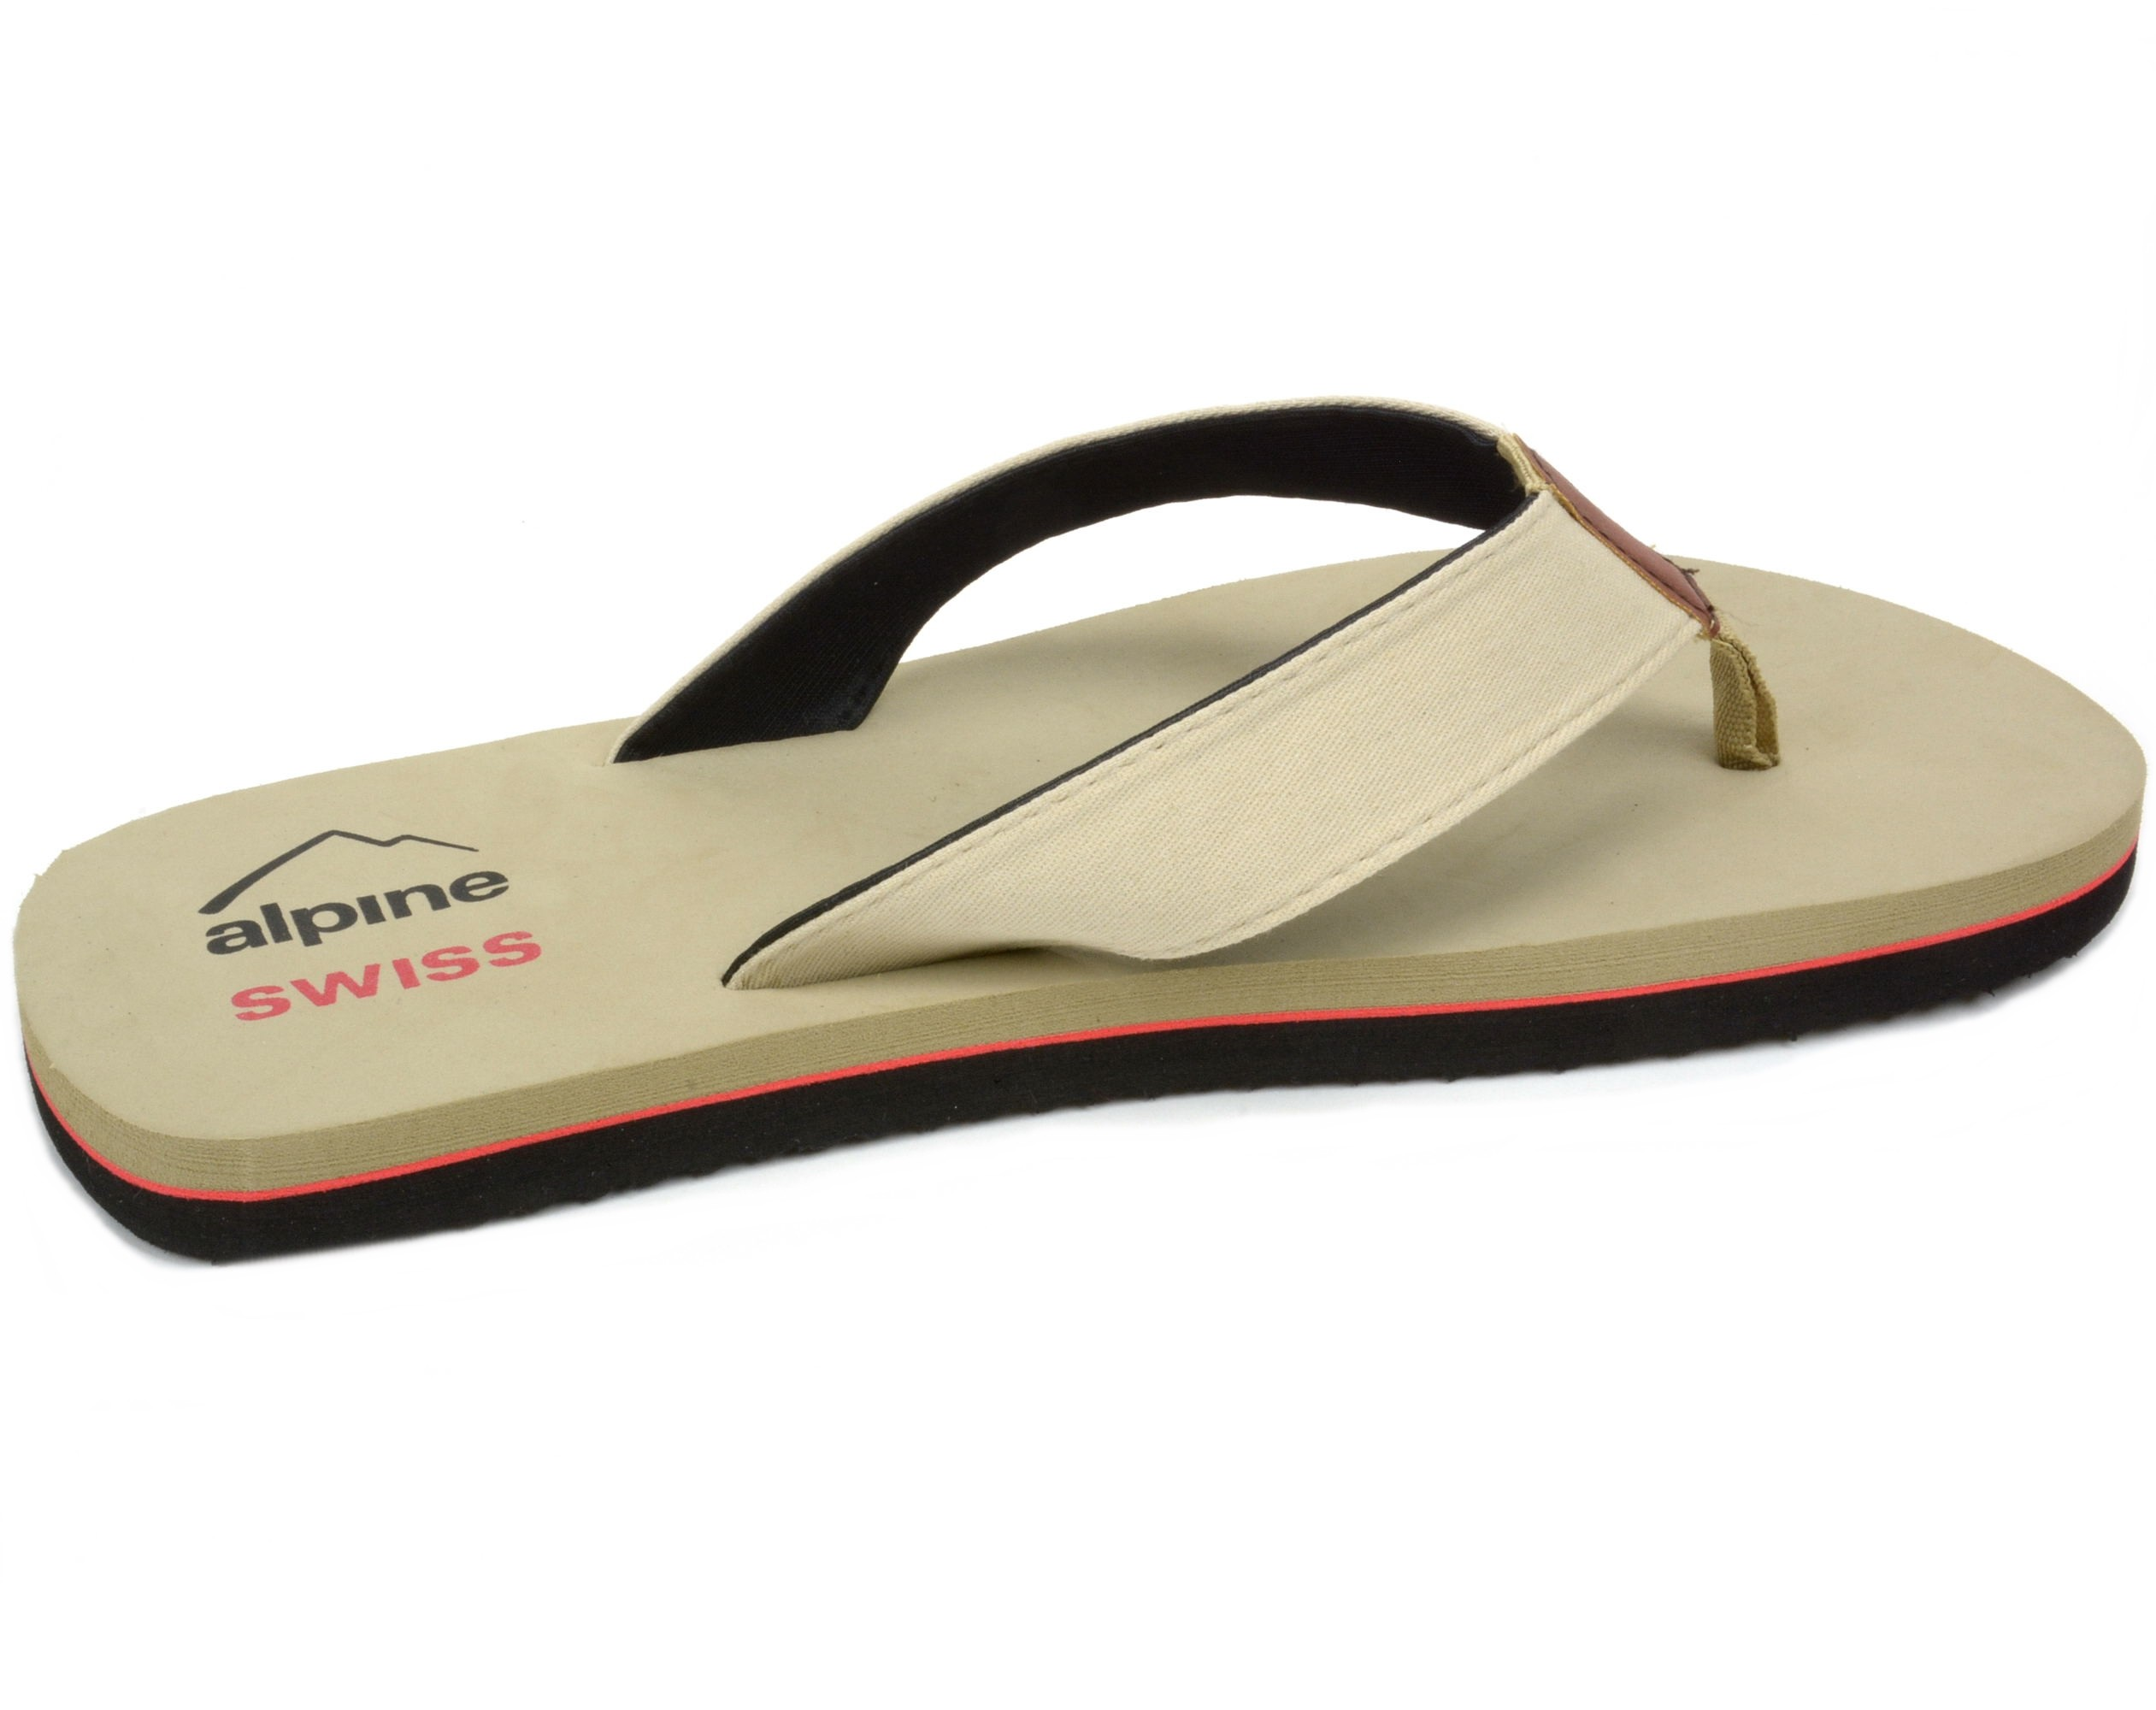 Alpine-Swiss-Mens-Flip-Flops-Beach-Sandals-Lightweight-EVA-Sole-Comfort-Thongs thumbnail 65